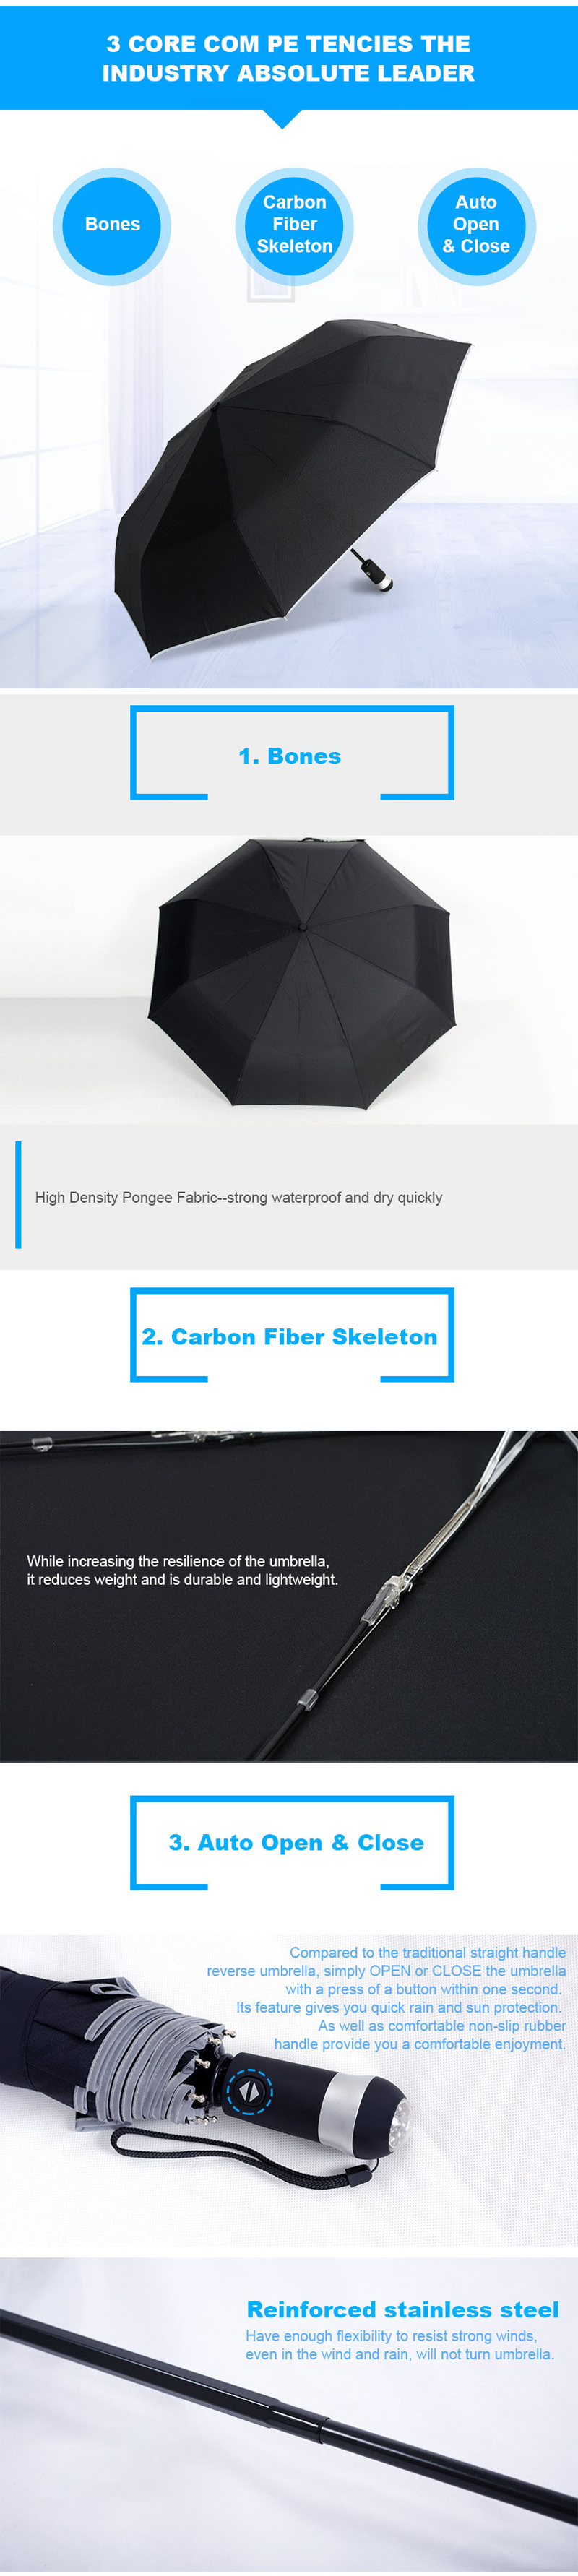 HENGLI RU-01 Multifunctional LED Luminous Automatic Umbrella Women Men Rain Umbrellas Travel Light Weight Rain Gear